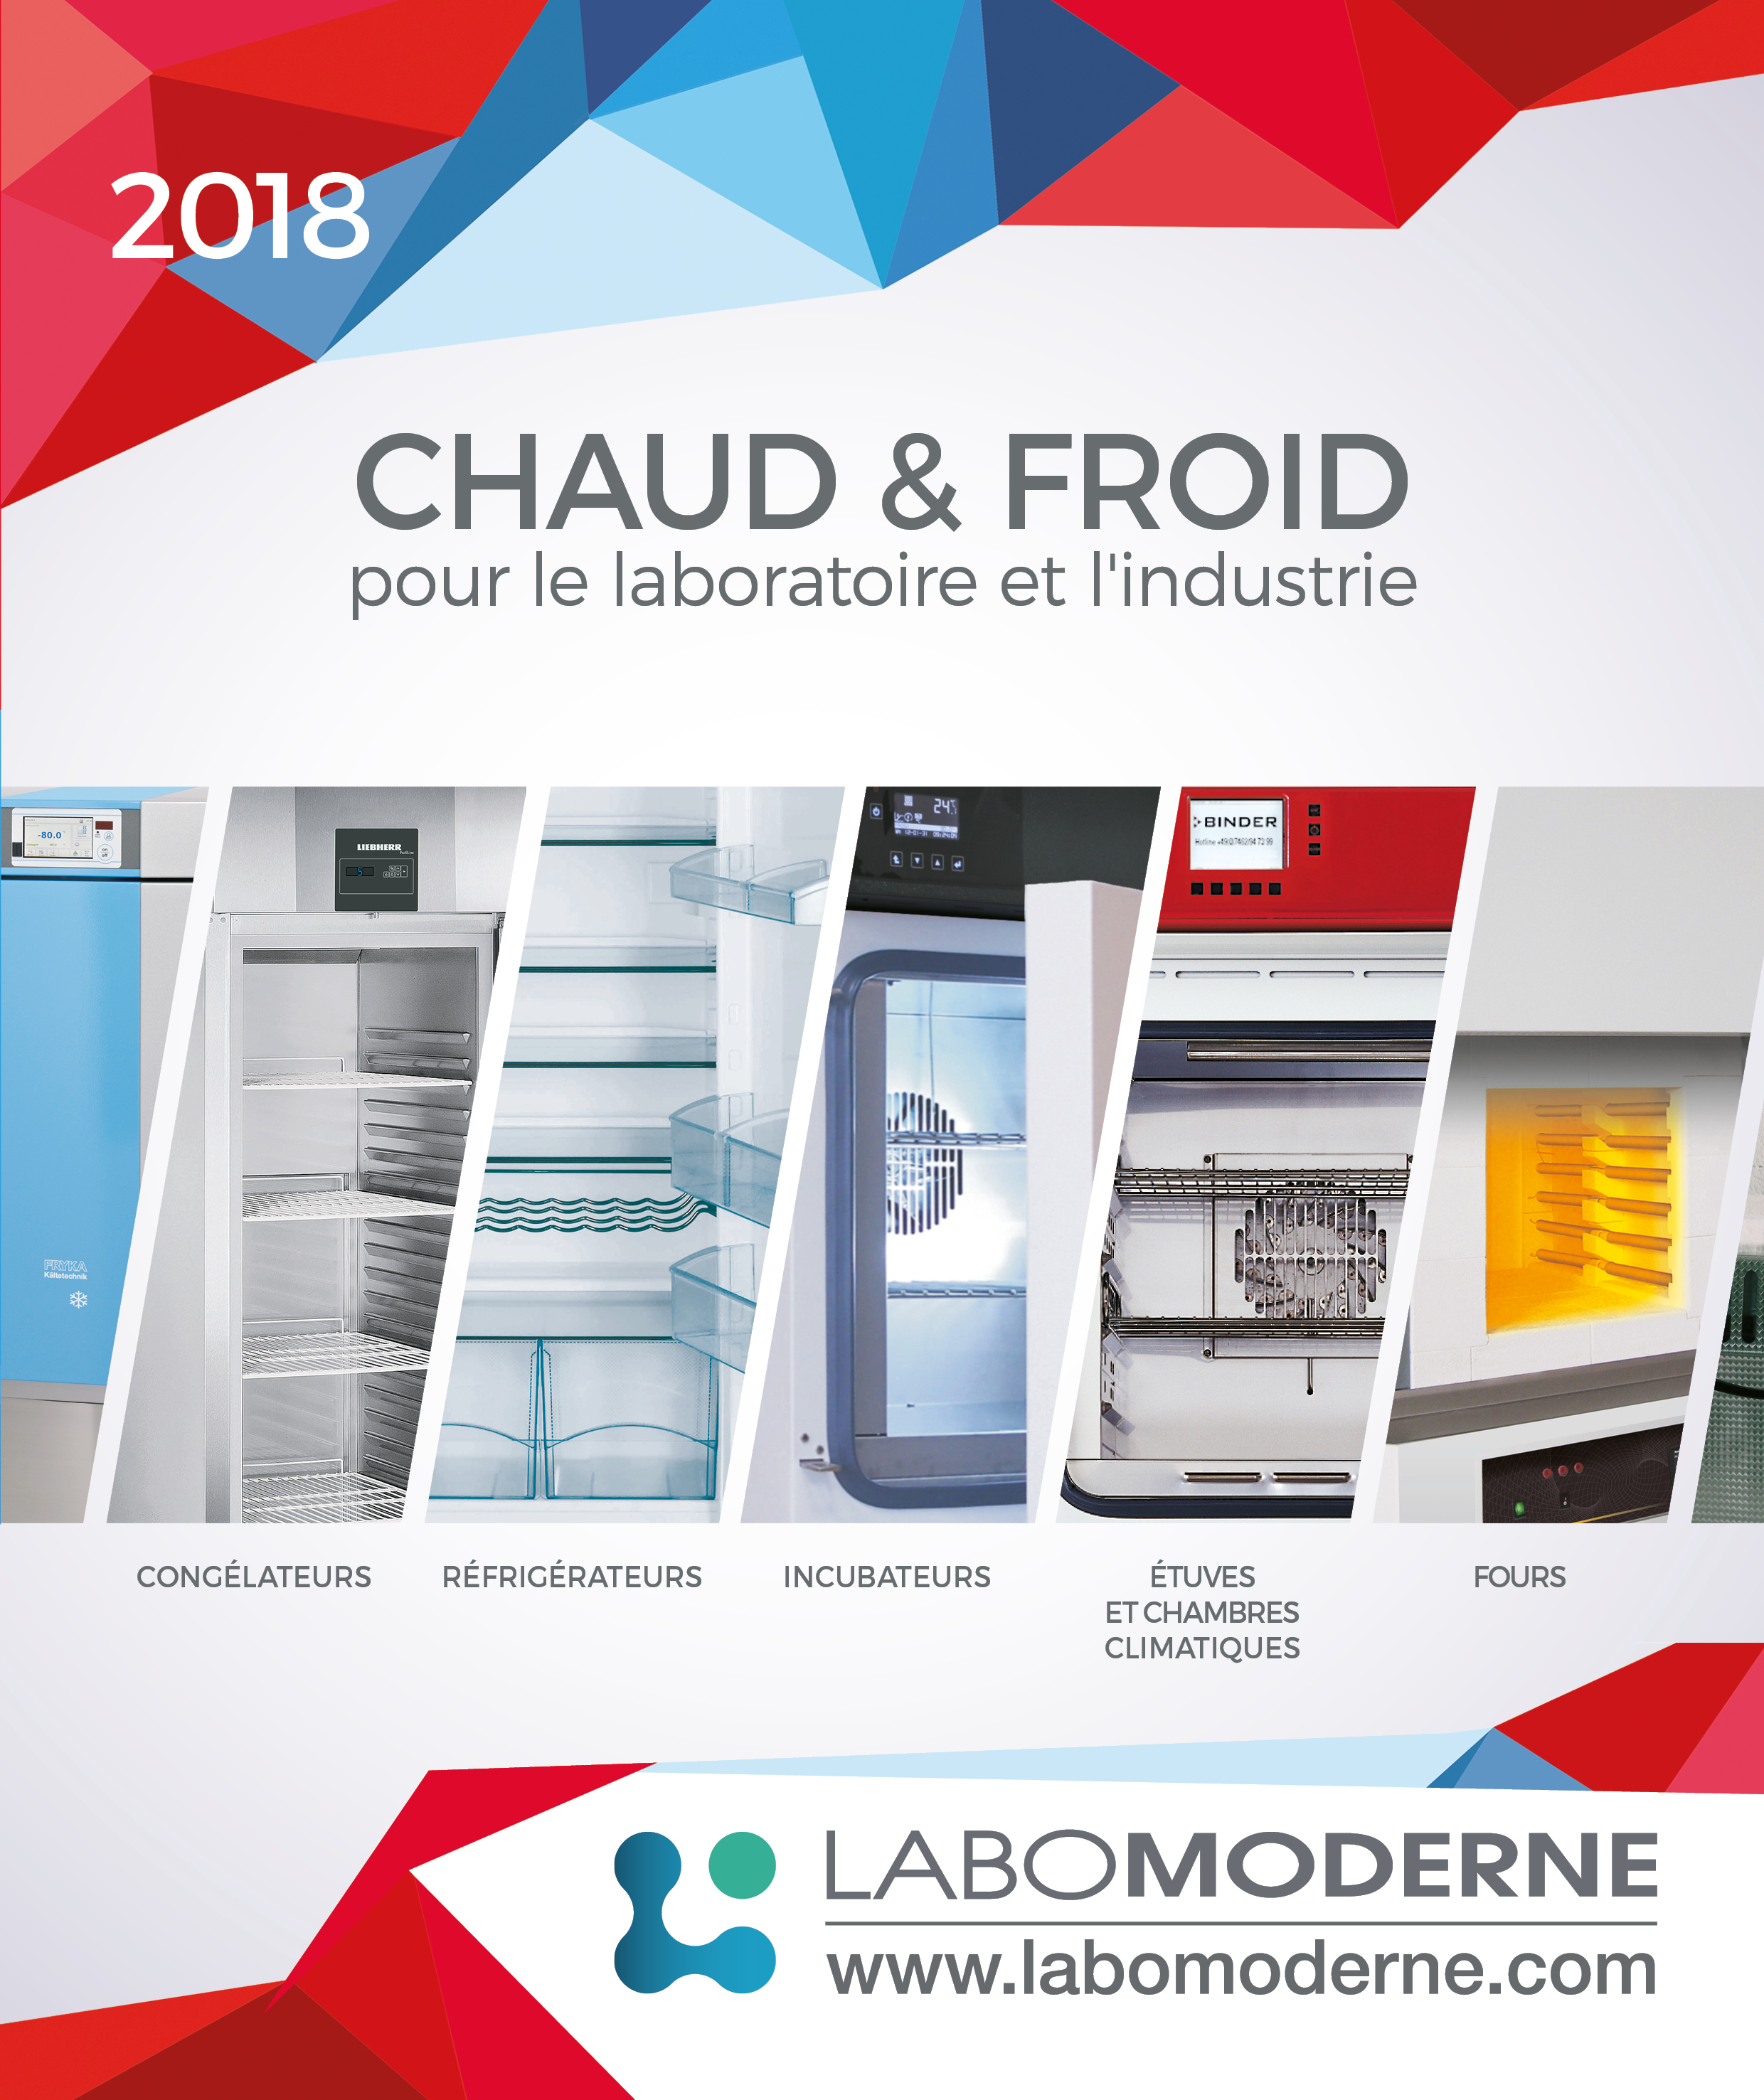 Chaud & froid 2018